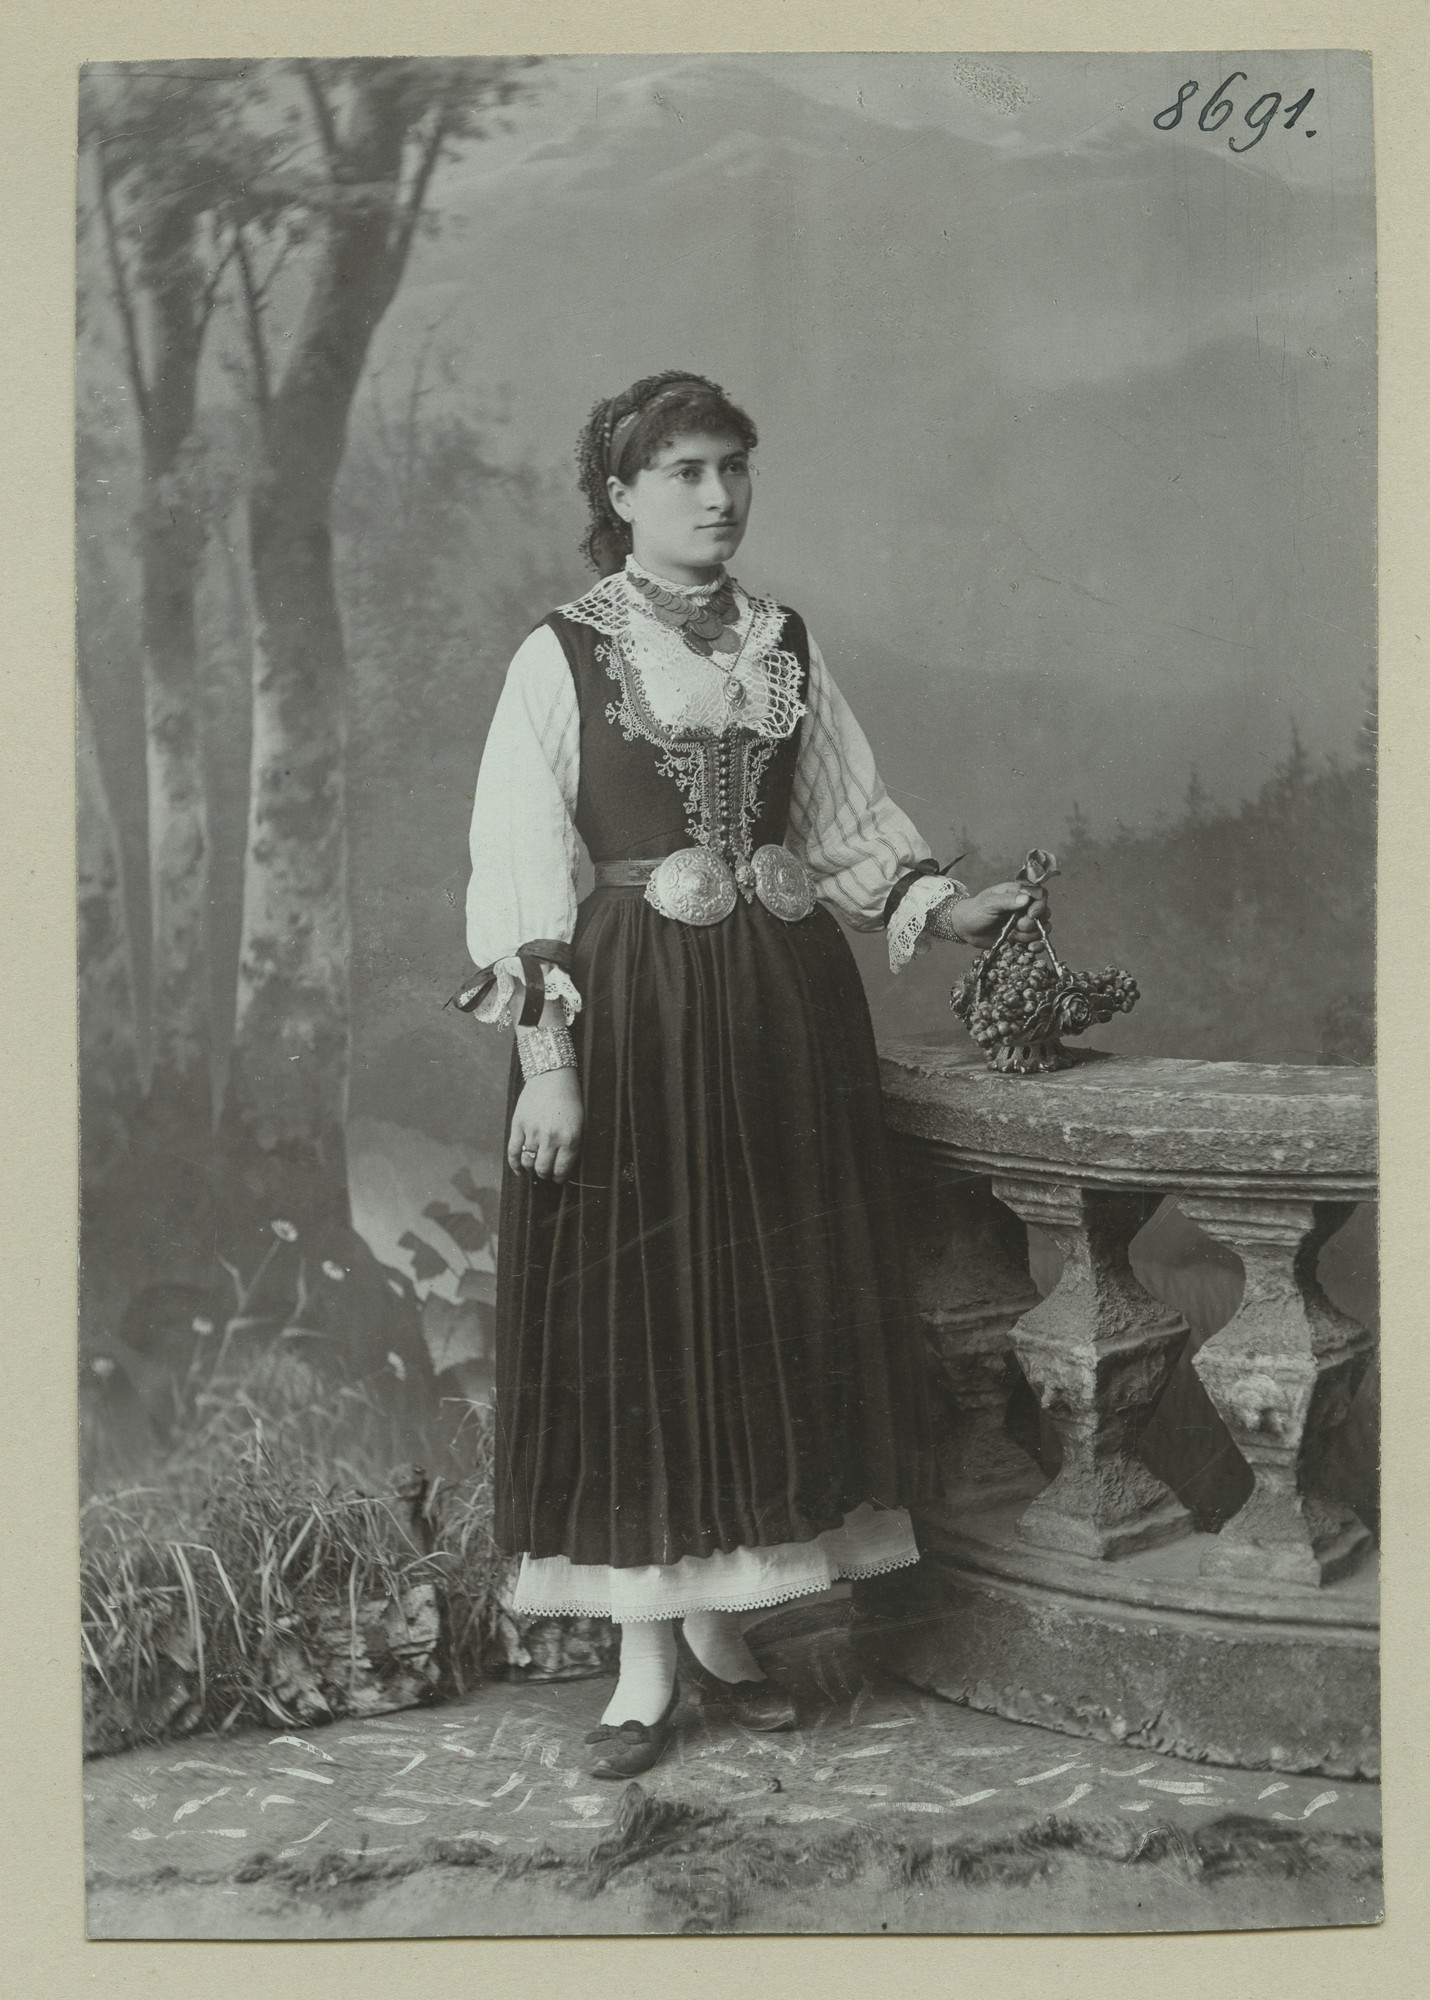 Studio portrait of a woman in folk attire, © The Austrian Museum of Folk Life and Folk Art